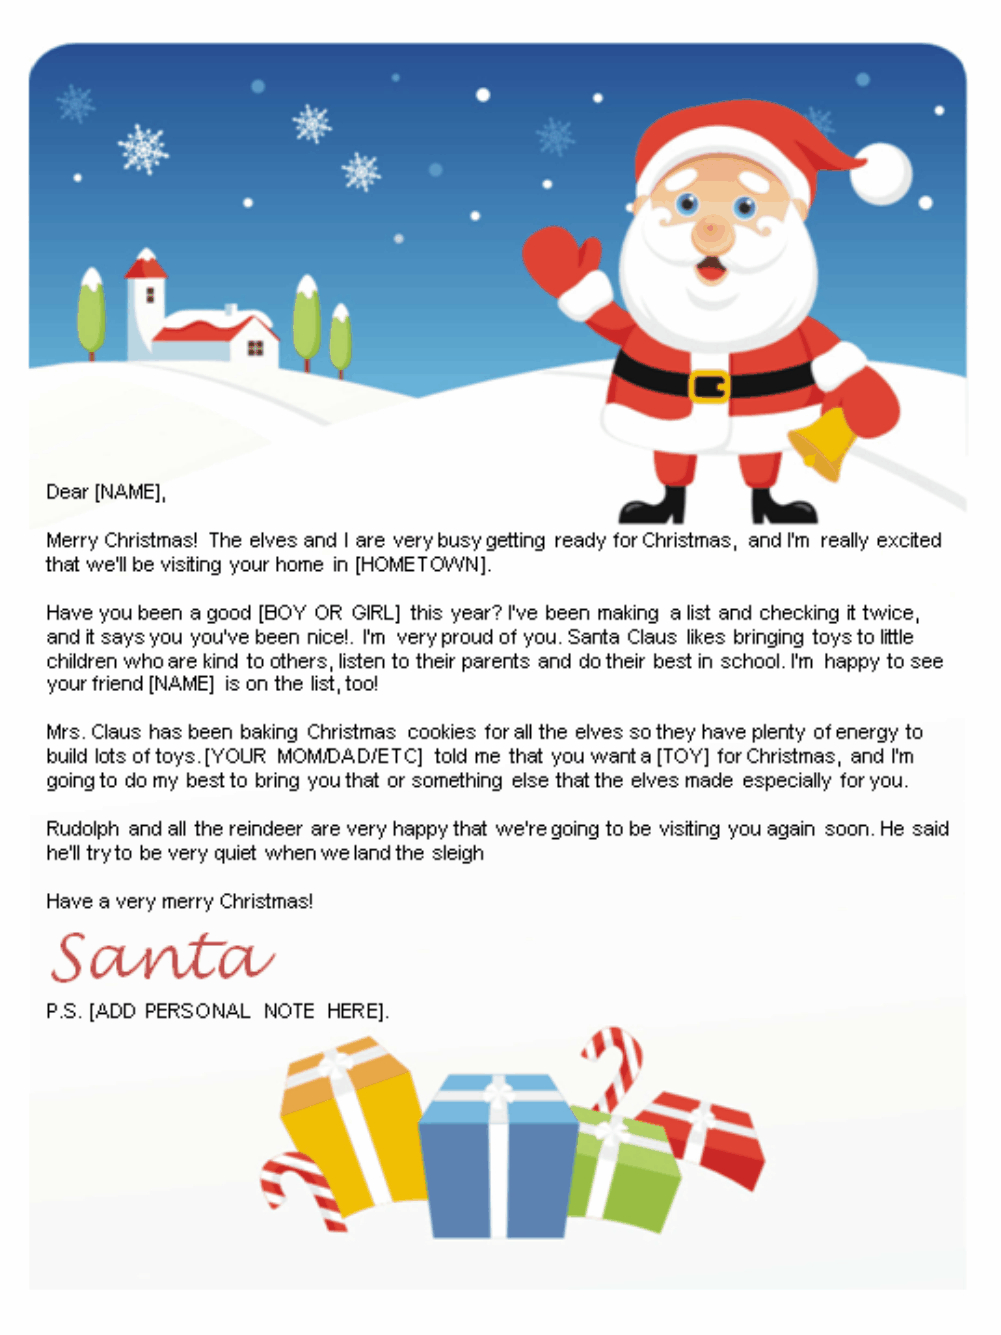 Free Letters From Santa | Santa Letters To Print At Home - Gifts - Free Printable Christmas Letters